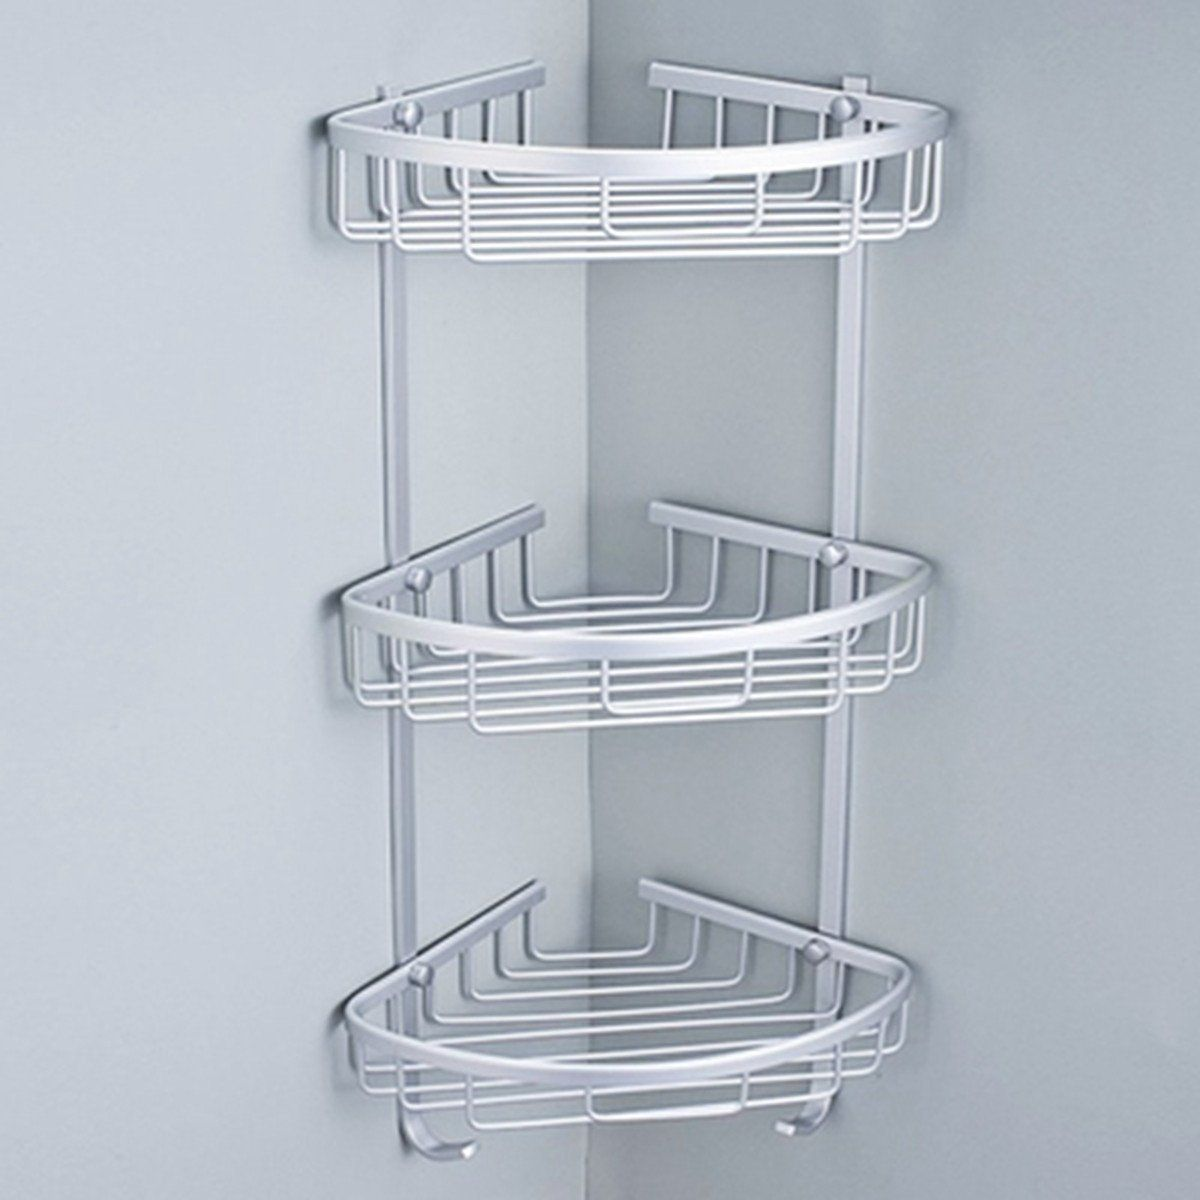 King Do Way Shower Bathroom Corner Shelf Storage Organizer Holder Basket Rack With Towel Hook Stainless Ste Bathroom Corner Rack Shower Storage Bathroom Shower